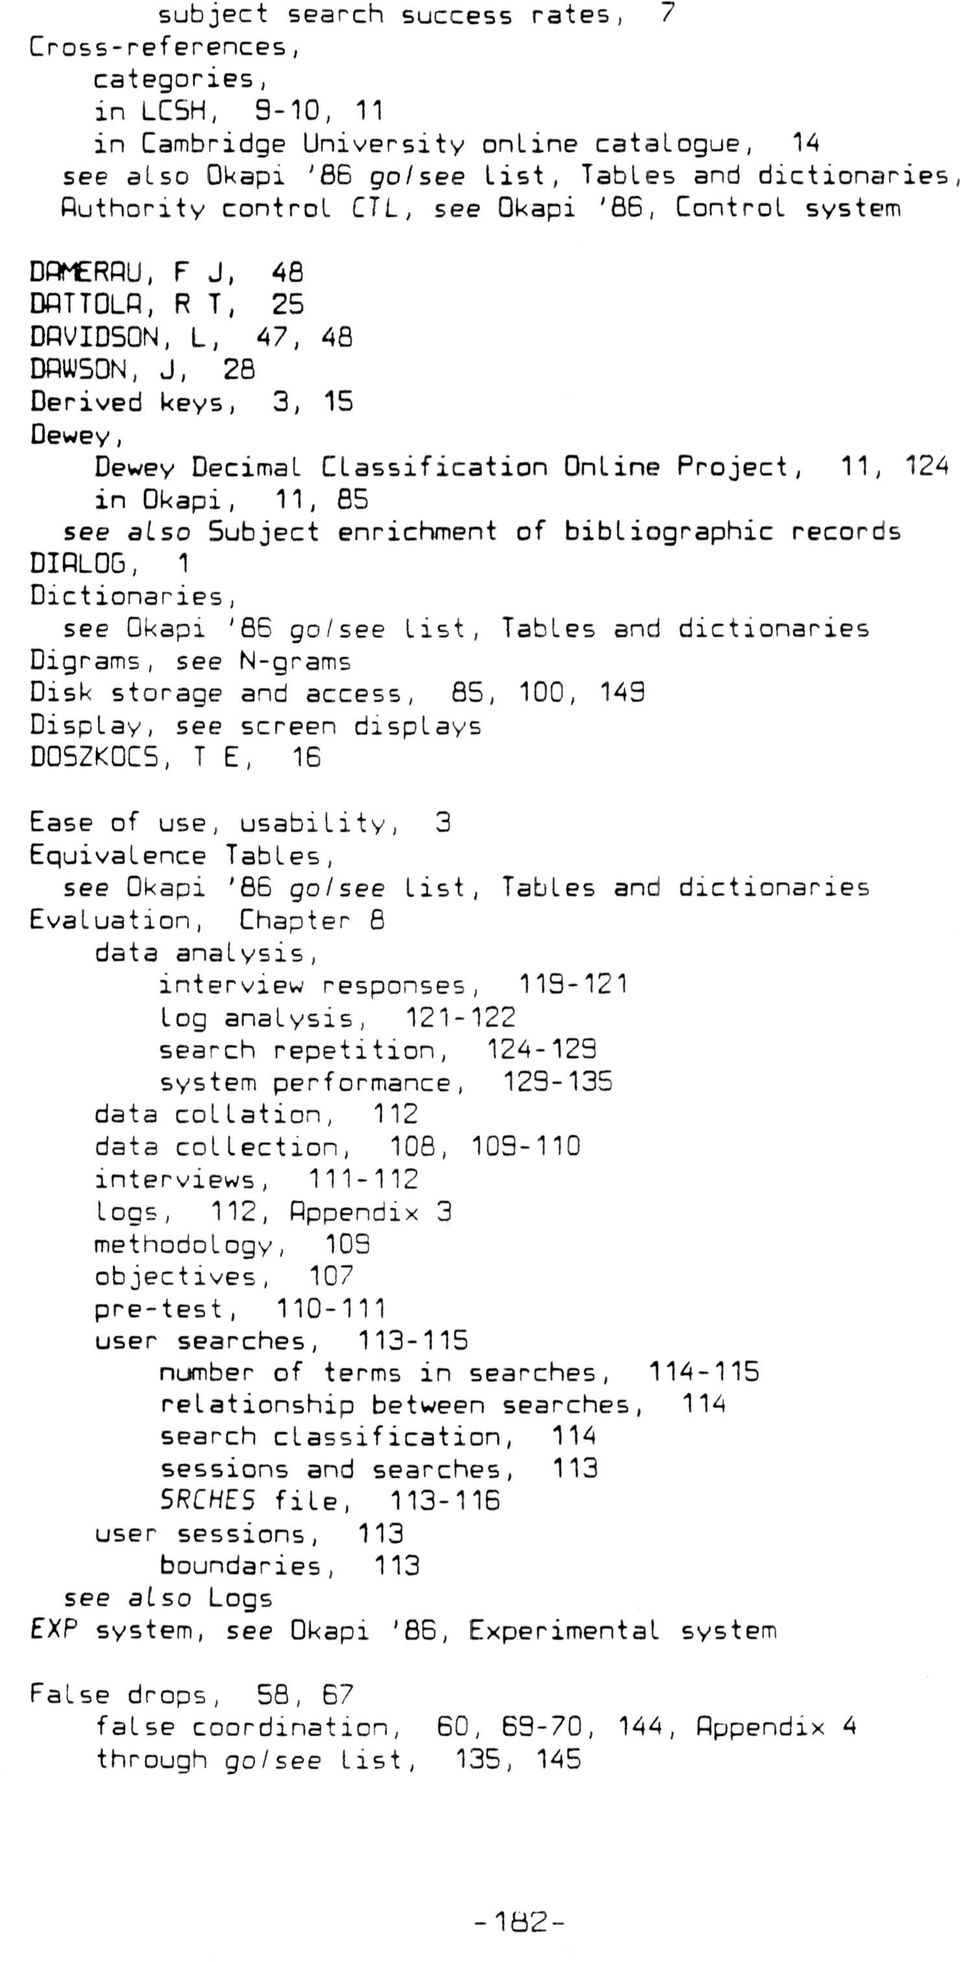 see also 5ubject enrichment of bibliographic records DIALOG, 1 Dictionaries, see Okapi '86 go/see list, Tables and dictionaries Digrams, see N-grams Disk storage and access, 85, 100, 149 Display, see